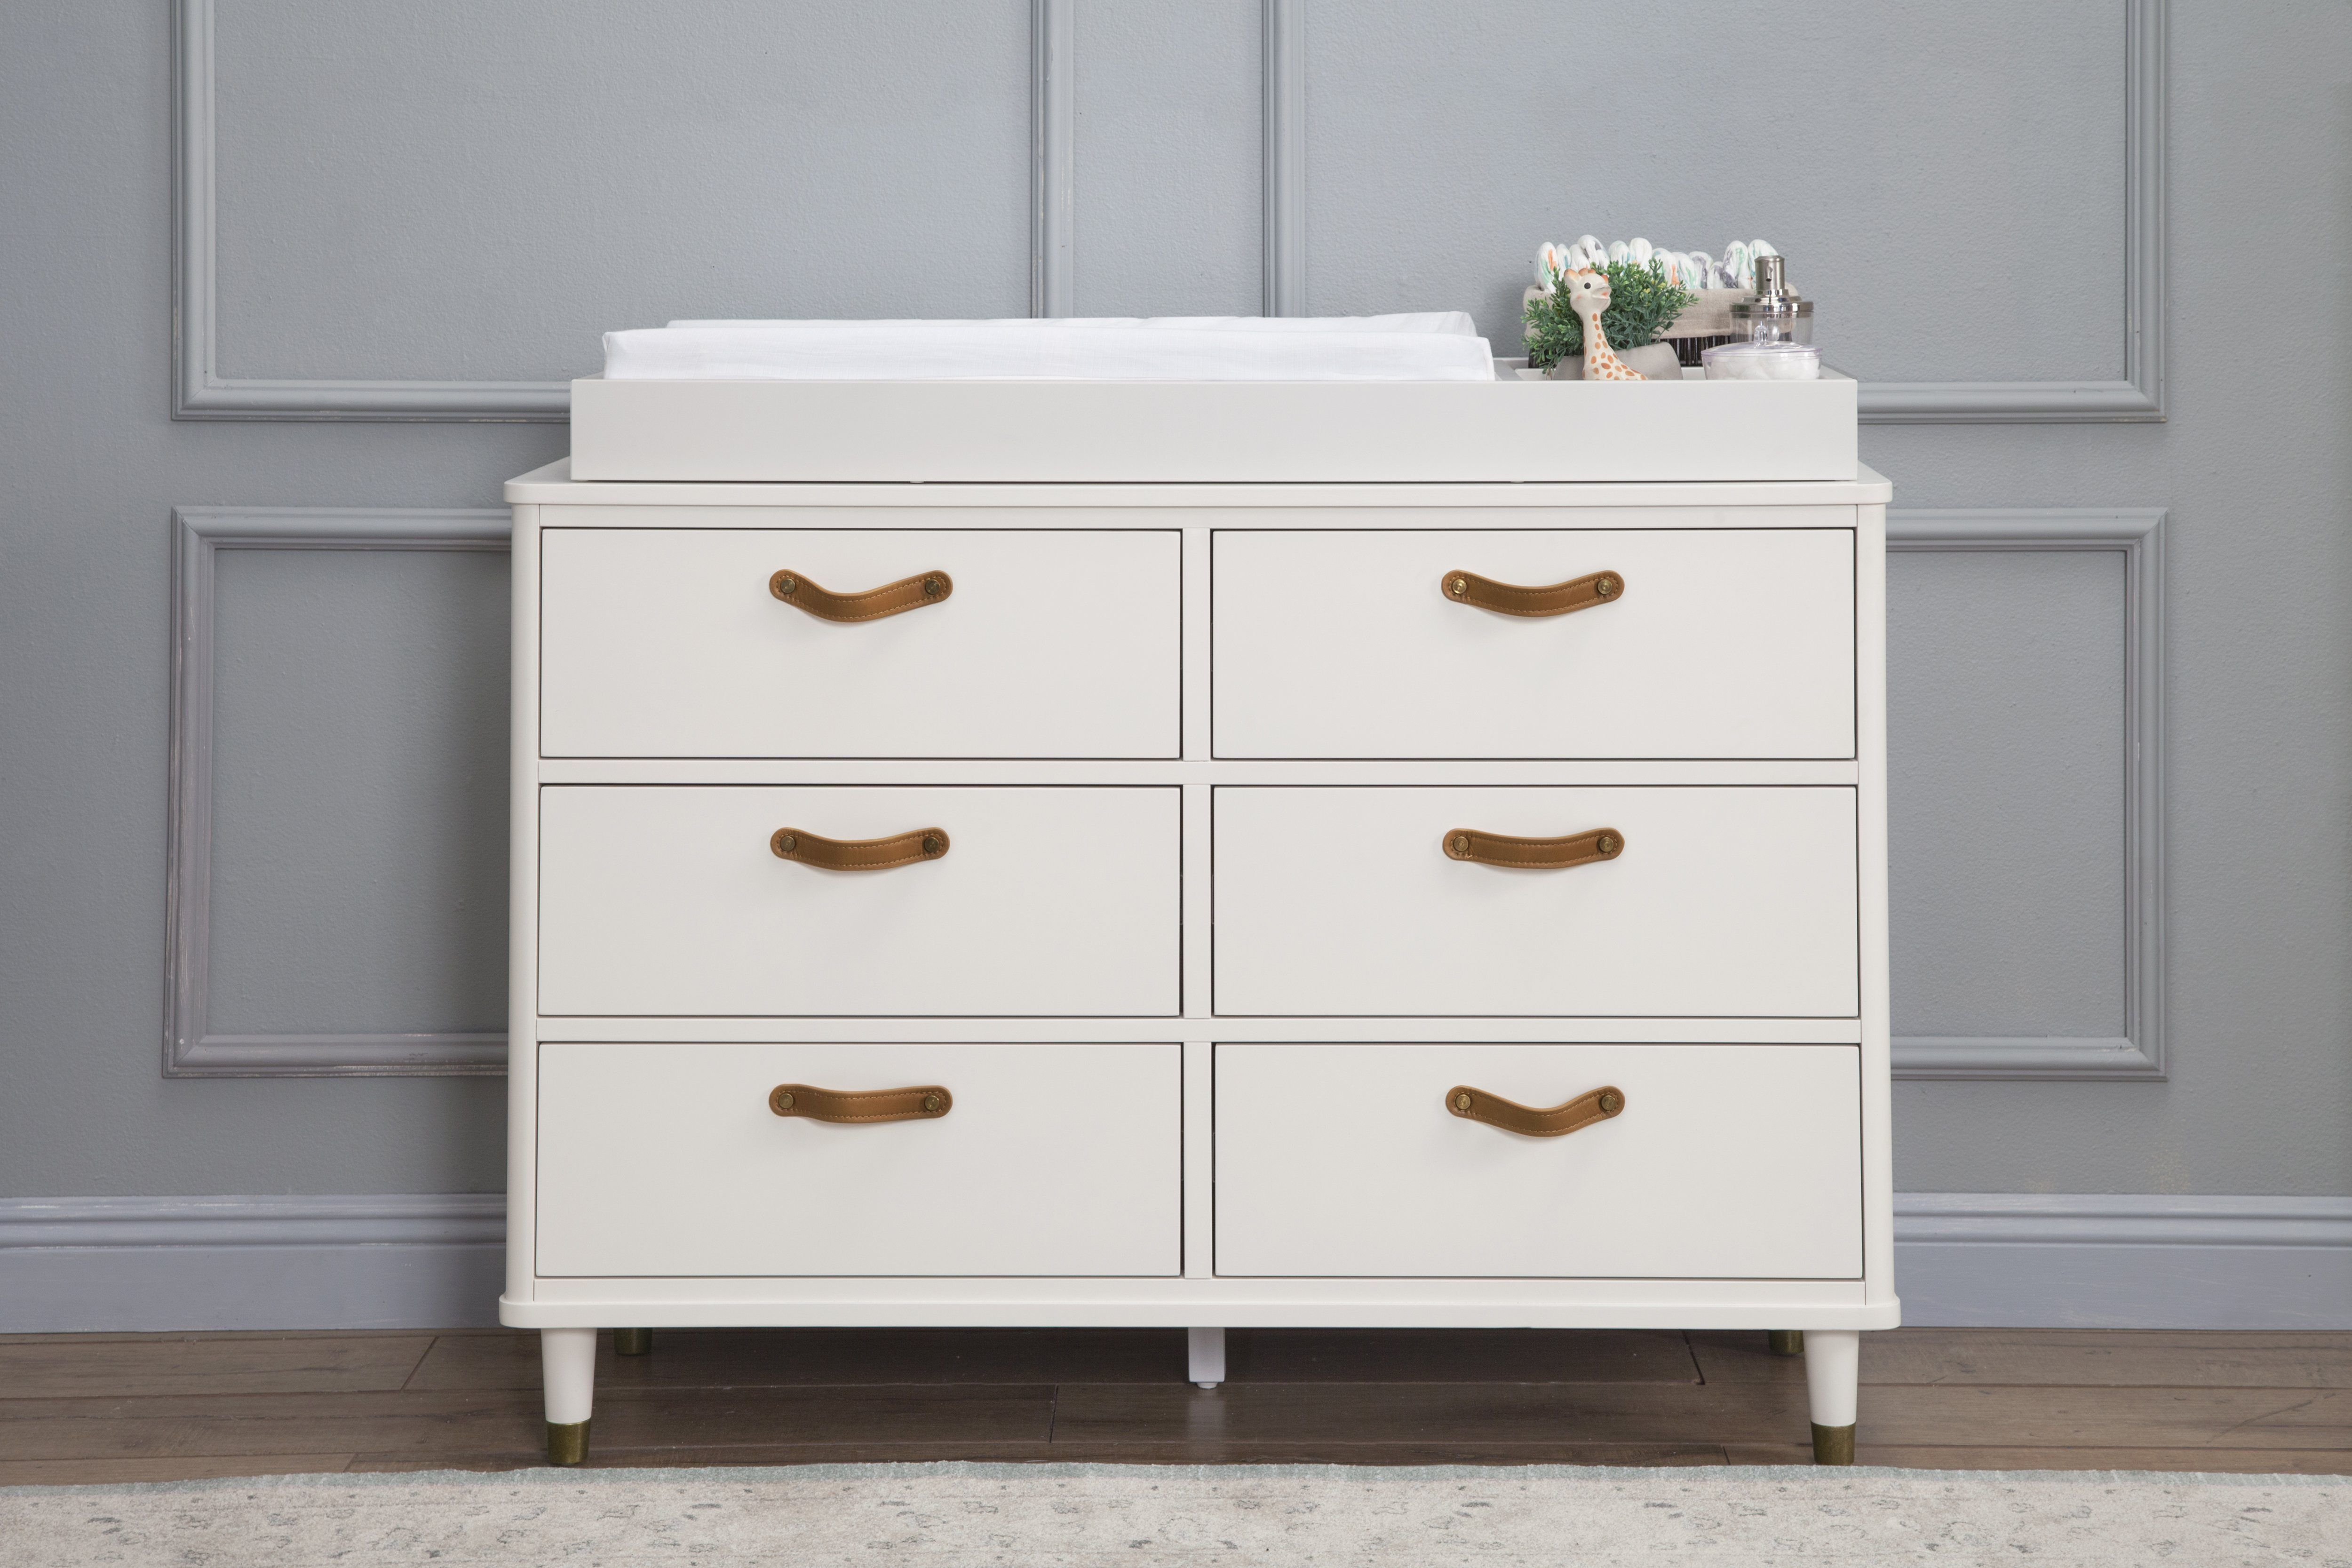 Baxton Studio Enzo 6 Drawer Faux Leather Dresser In 2021 Leather Upholstery Bedroom Furniture Dresser White Faux Leather [ 1600 x 1600 Pixel ]